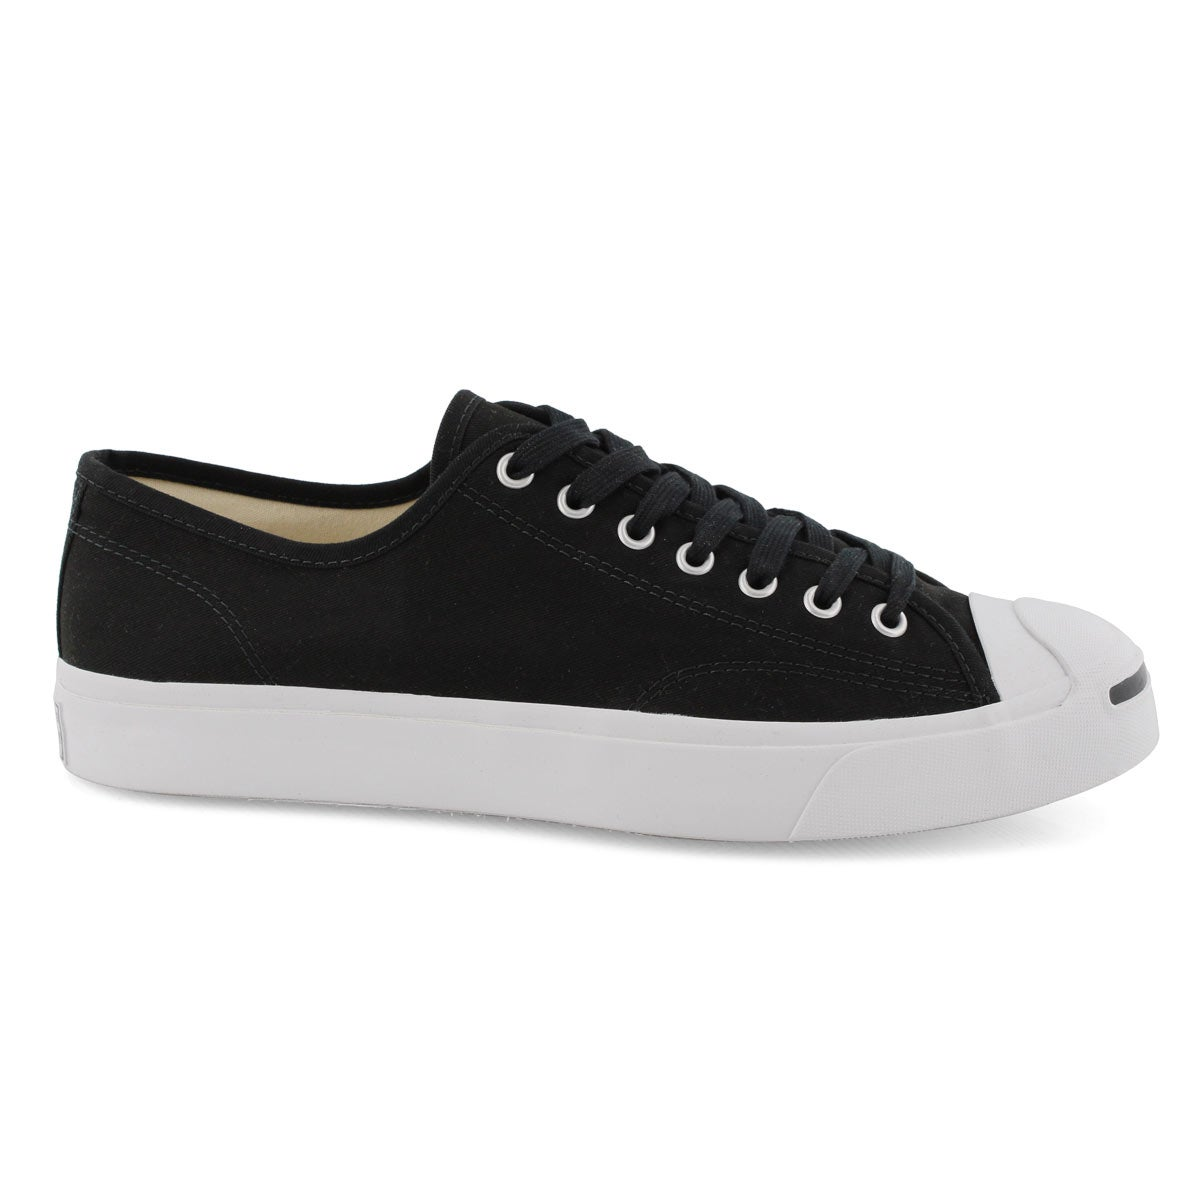 Mns Jack Purcell blk snkr